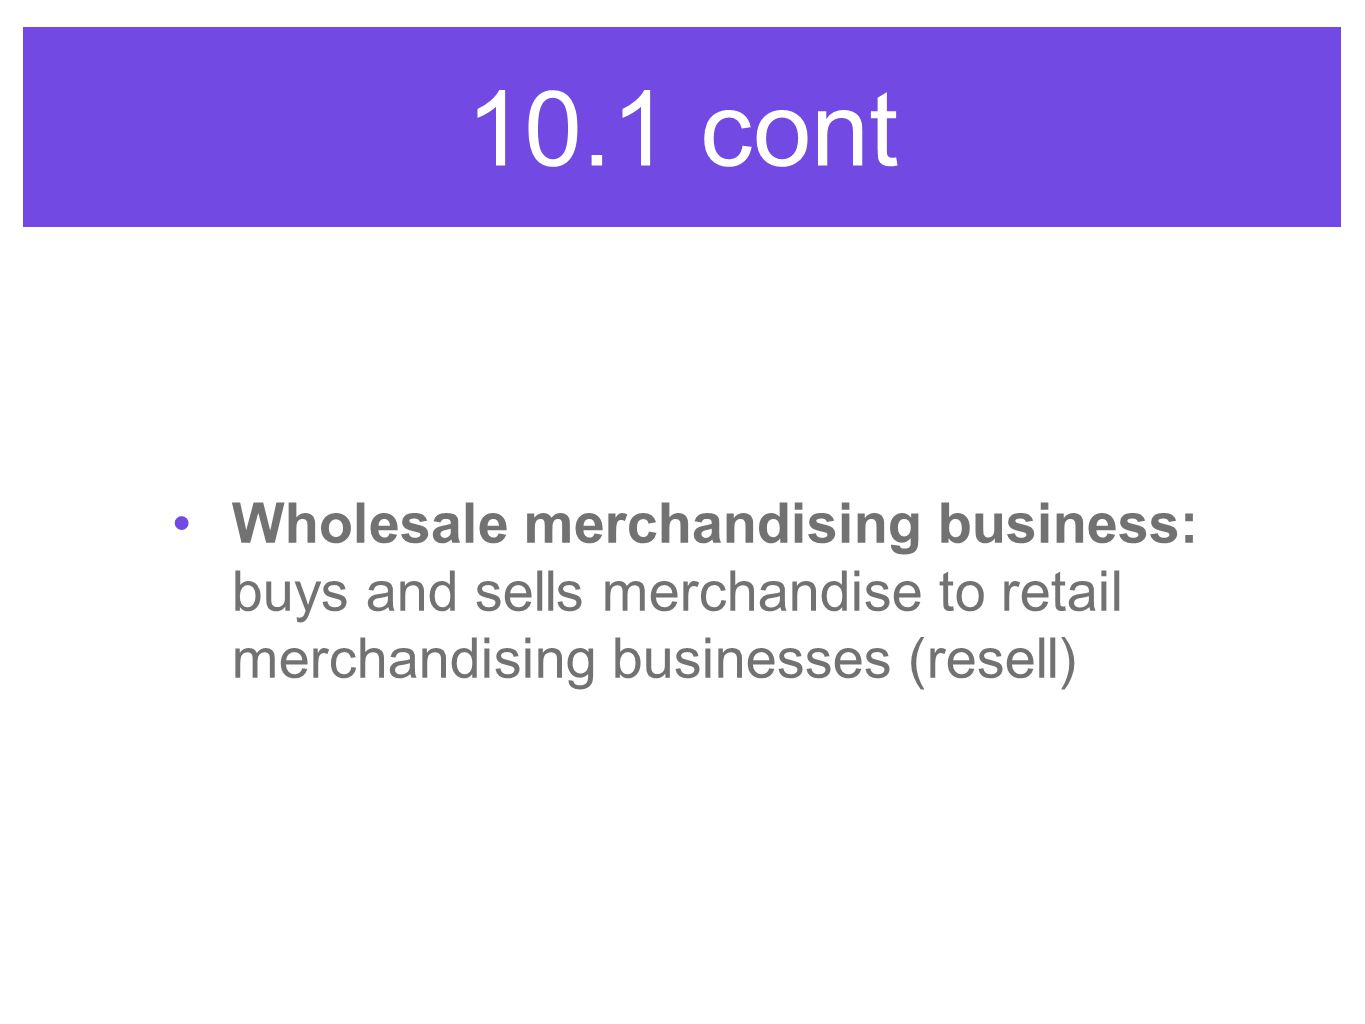 10.1 cont Wholesale merchandising business: buys and sells merchandise to retail merchandising businesses (resell)